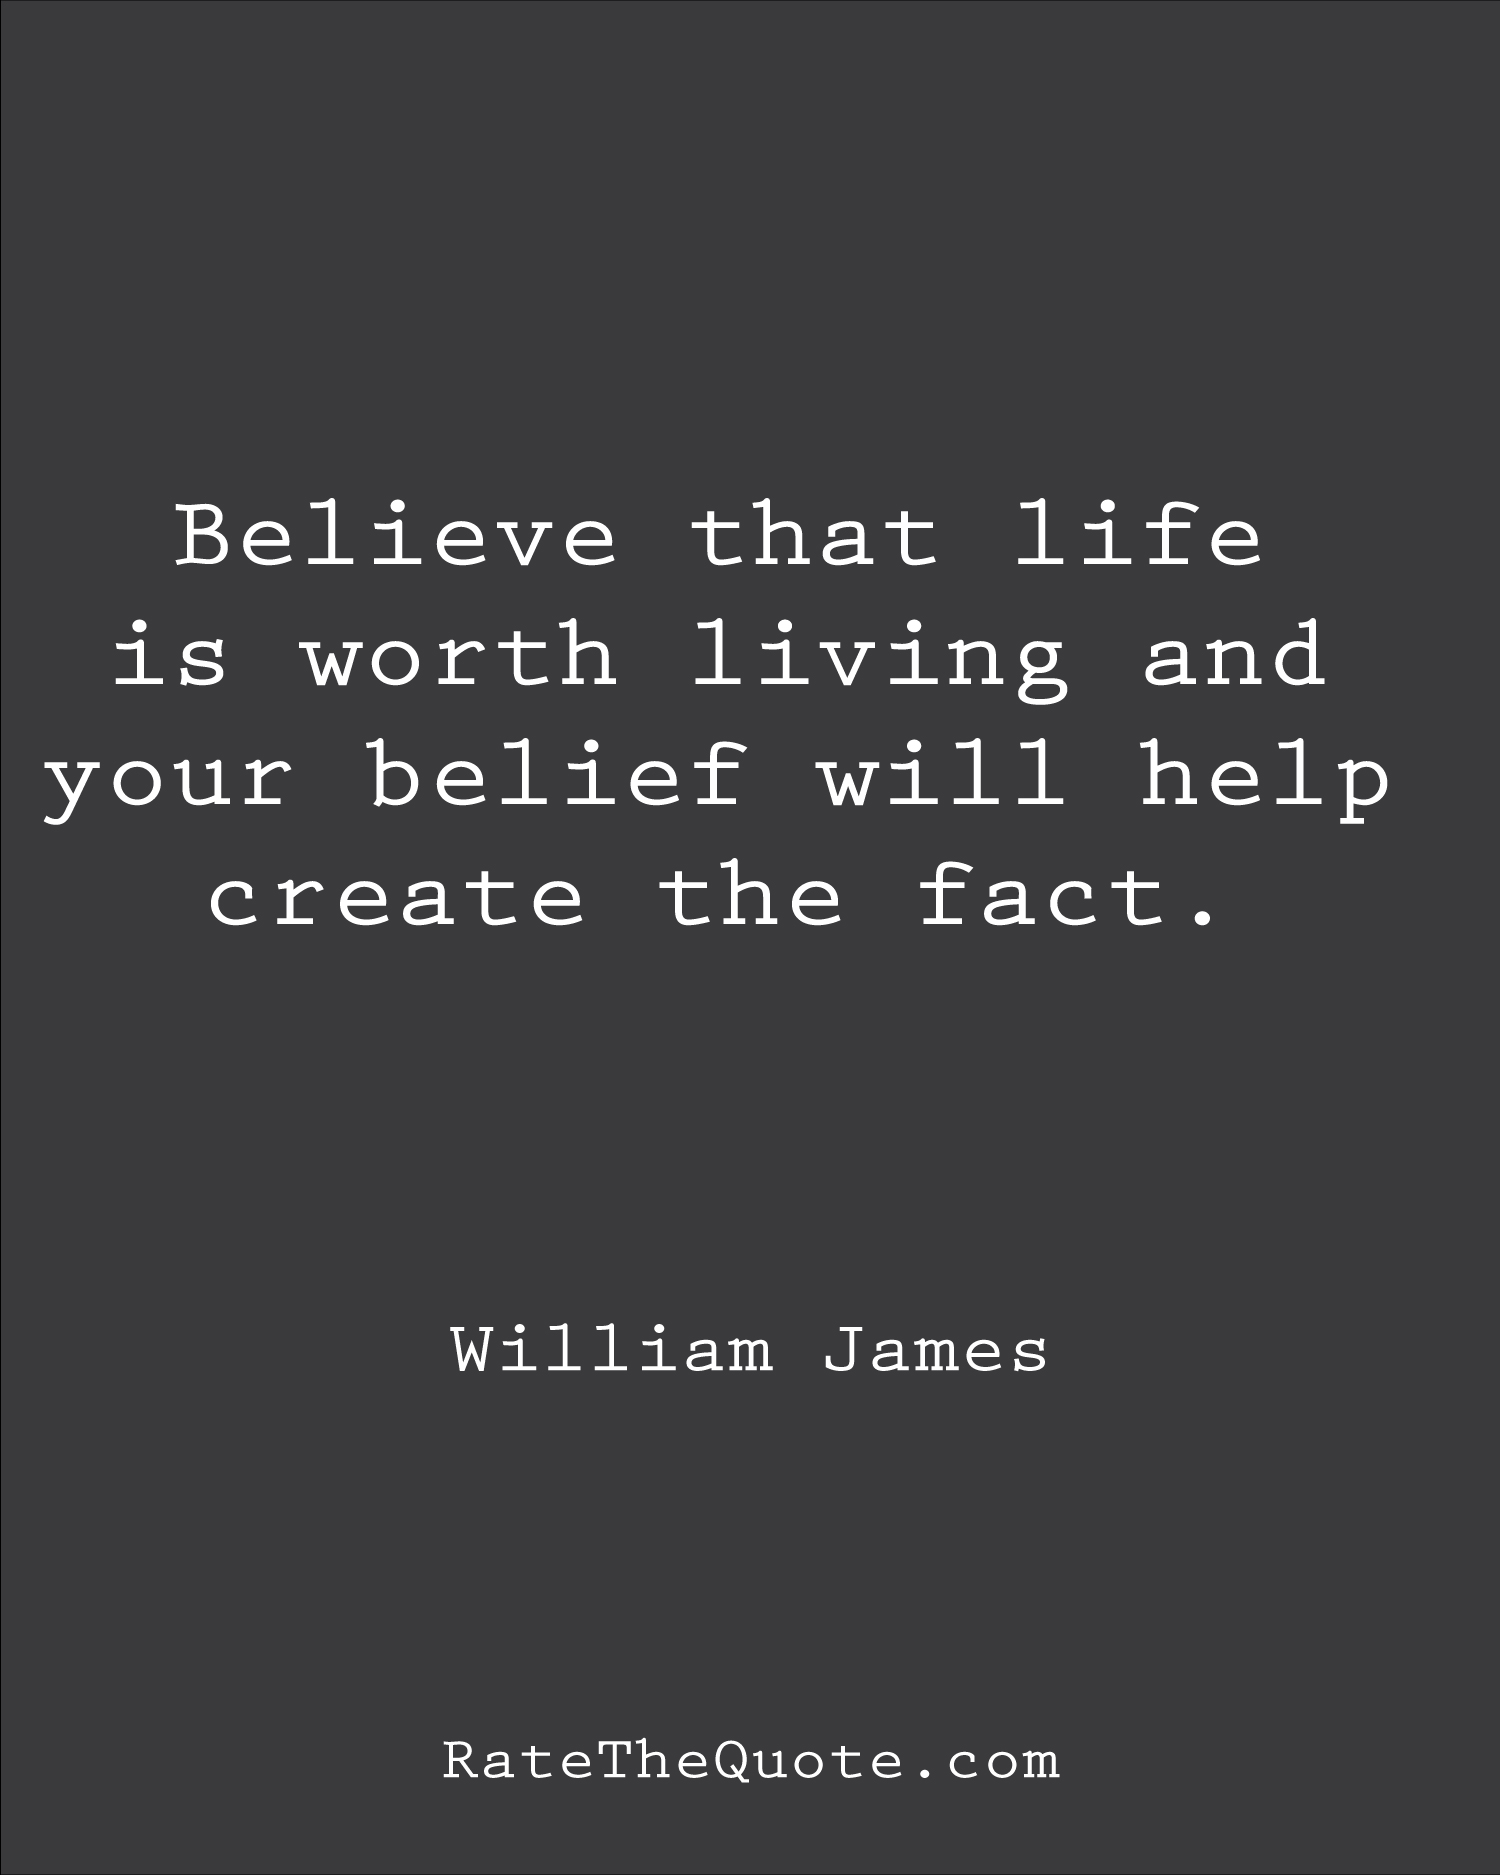 Believe that life is worth living and your belief will help create the fact. William James